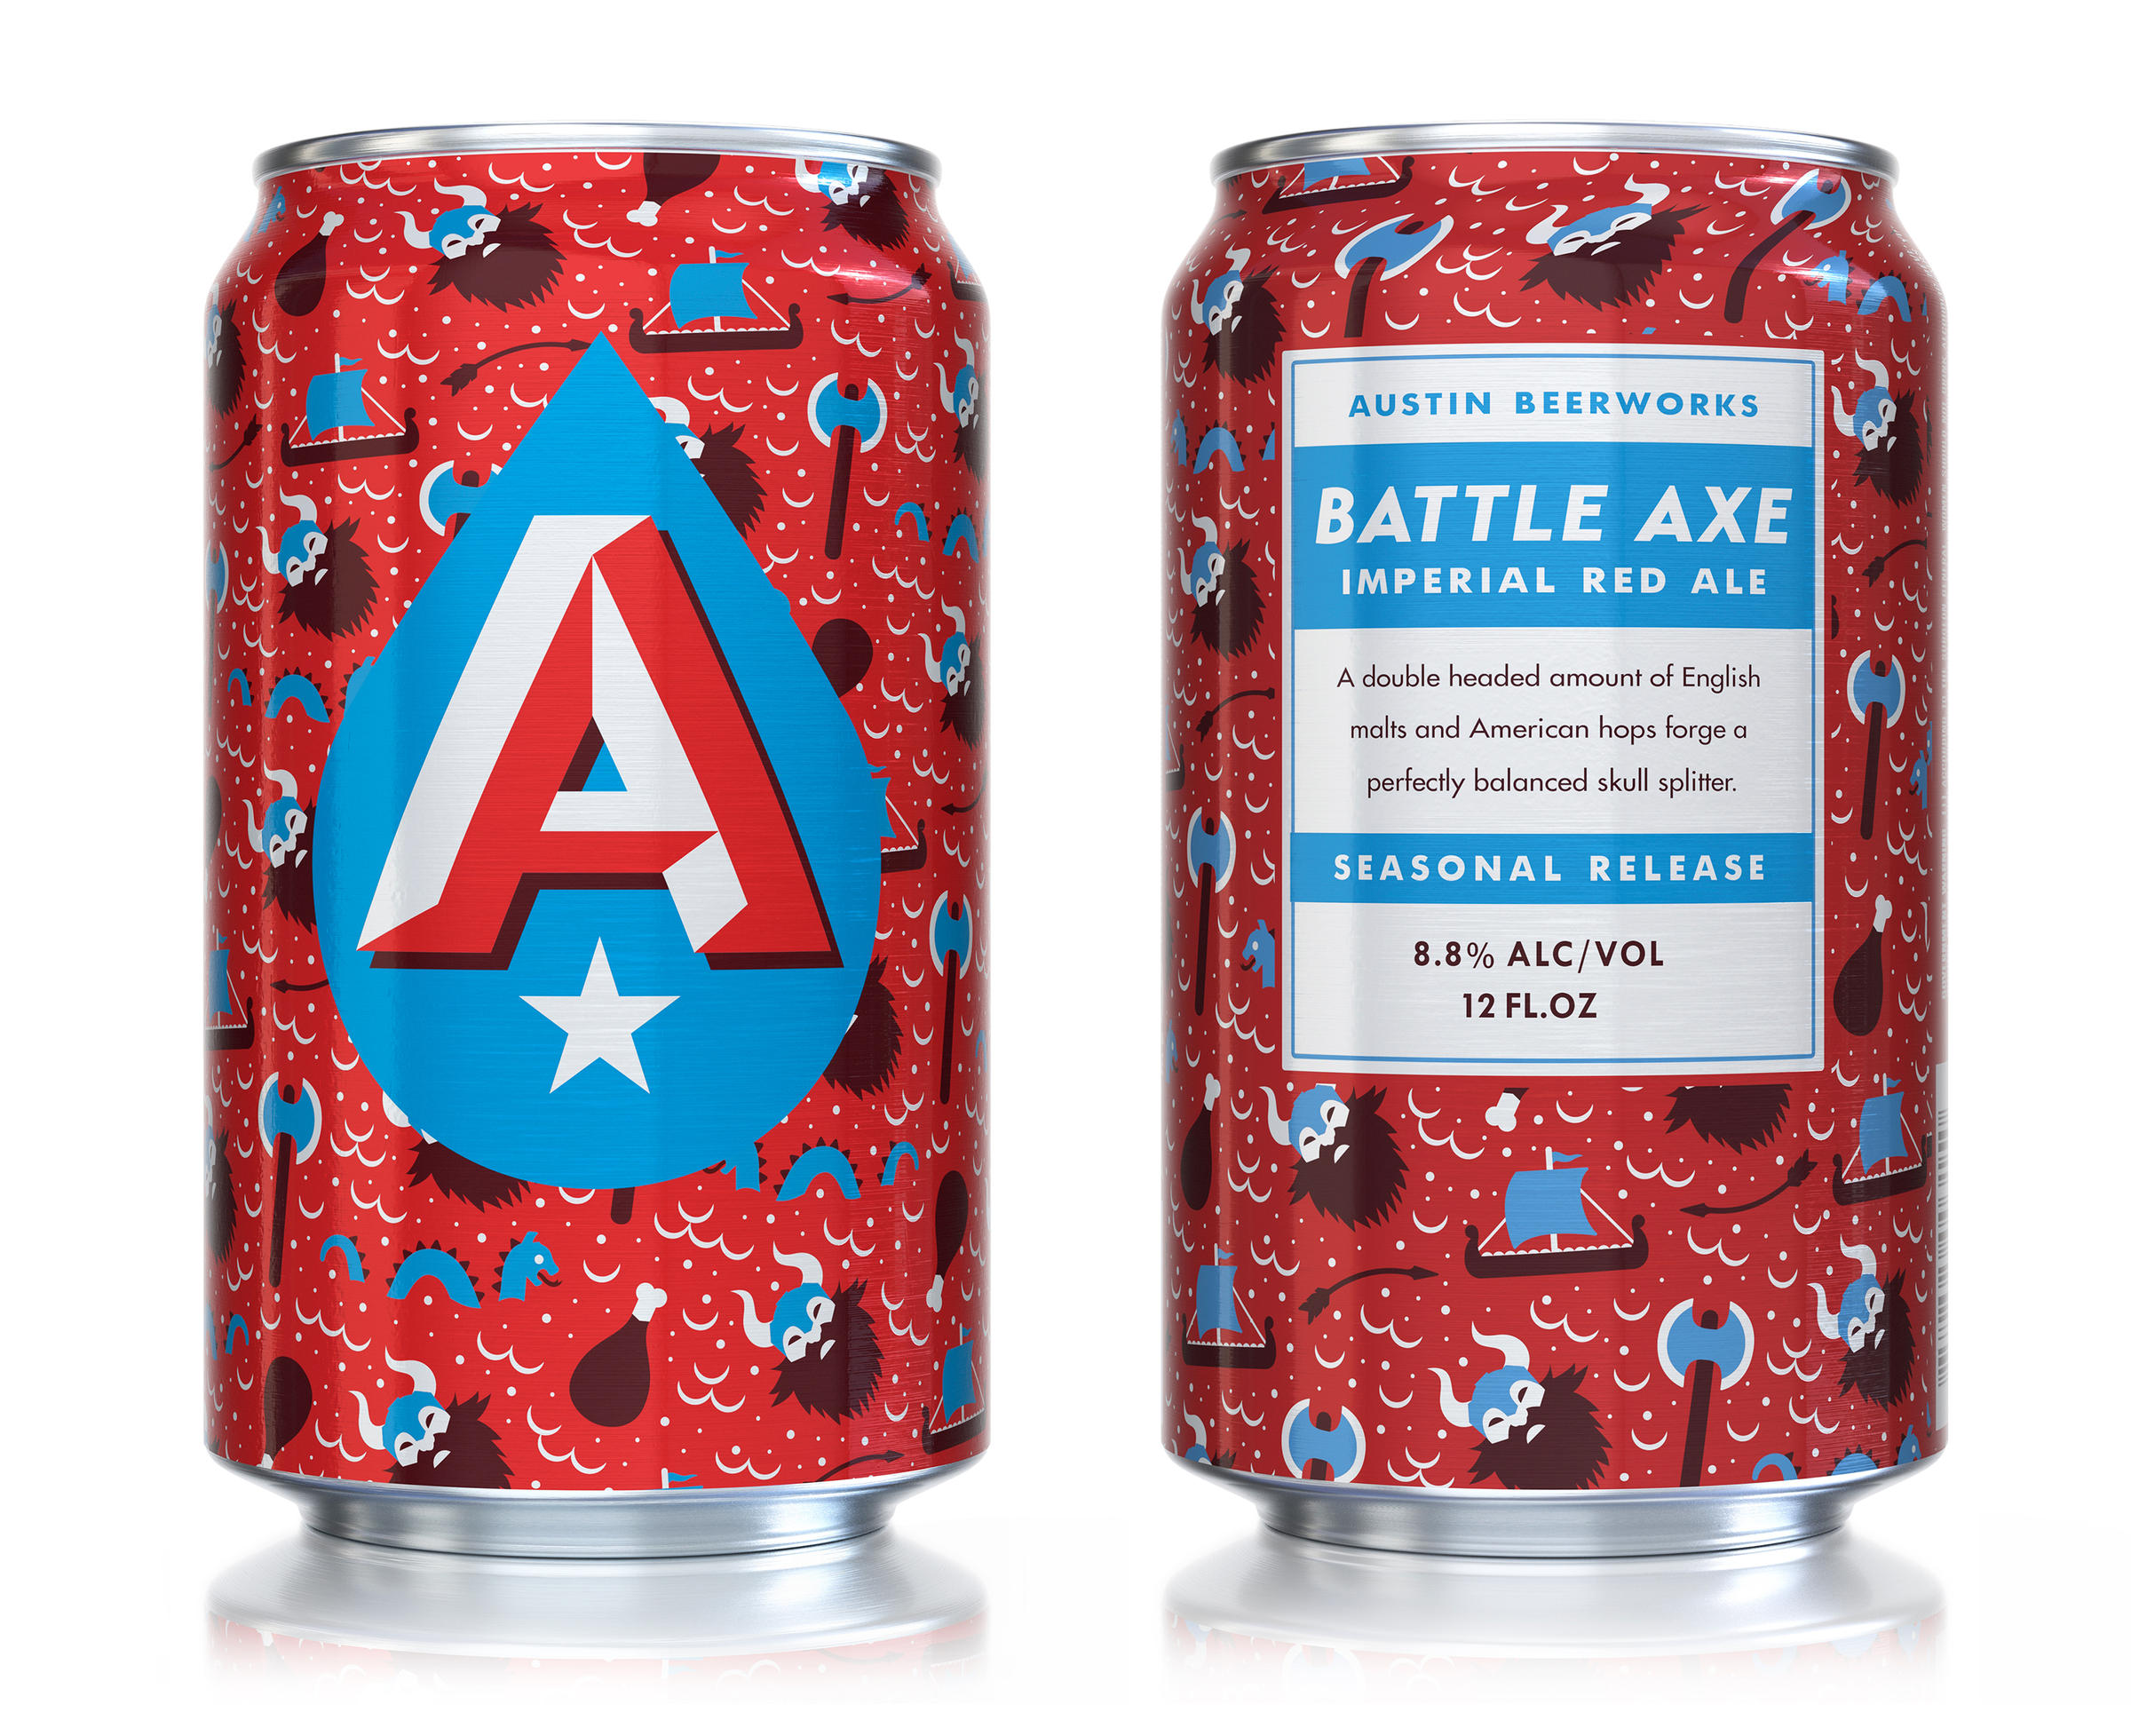 Austin Beerworks Battle Axe